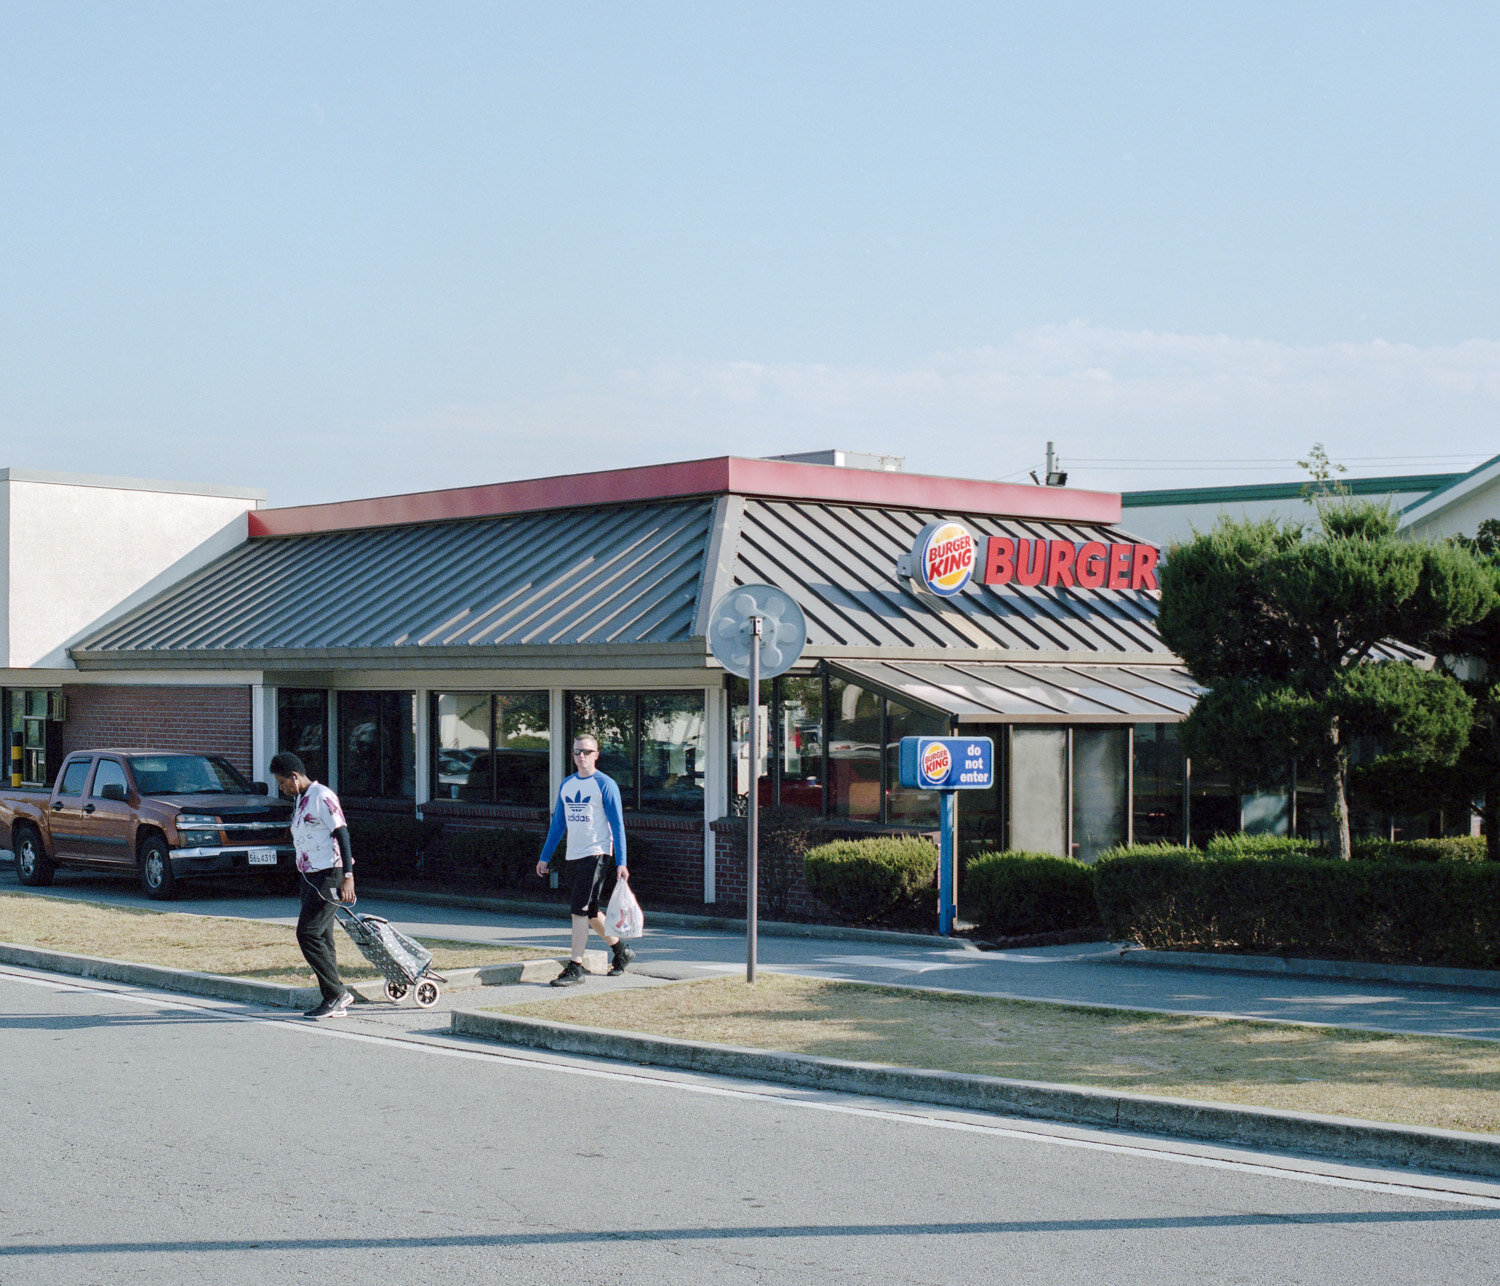 A burger king inside the biggest american military base in South Korea.